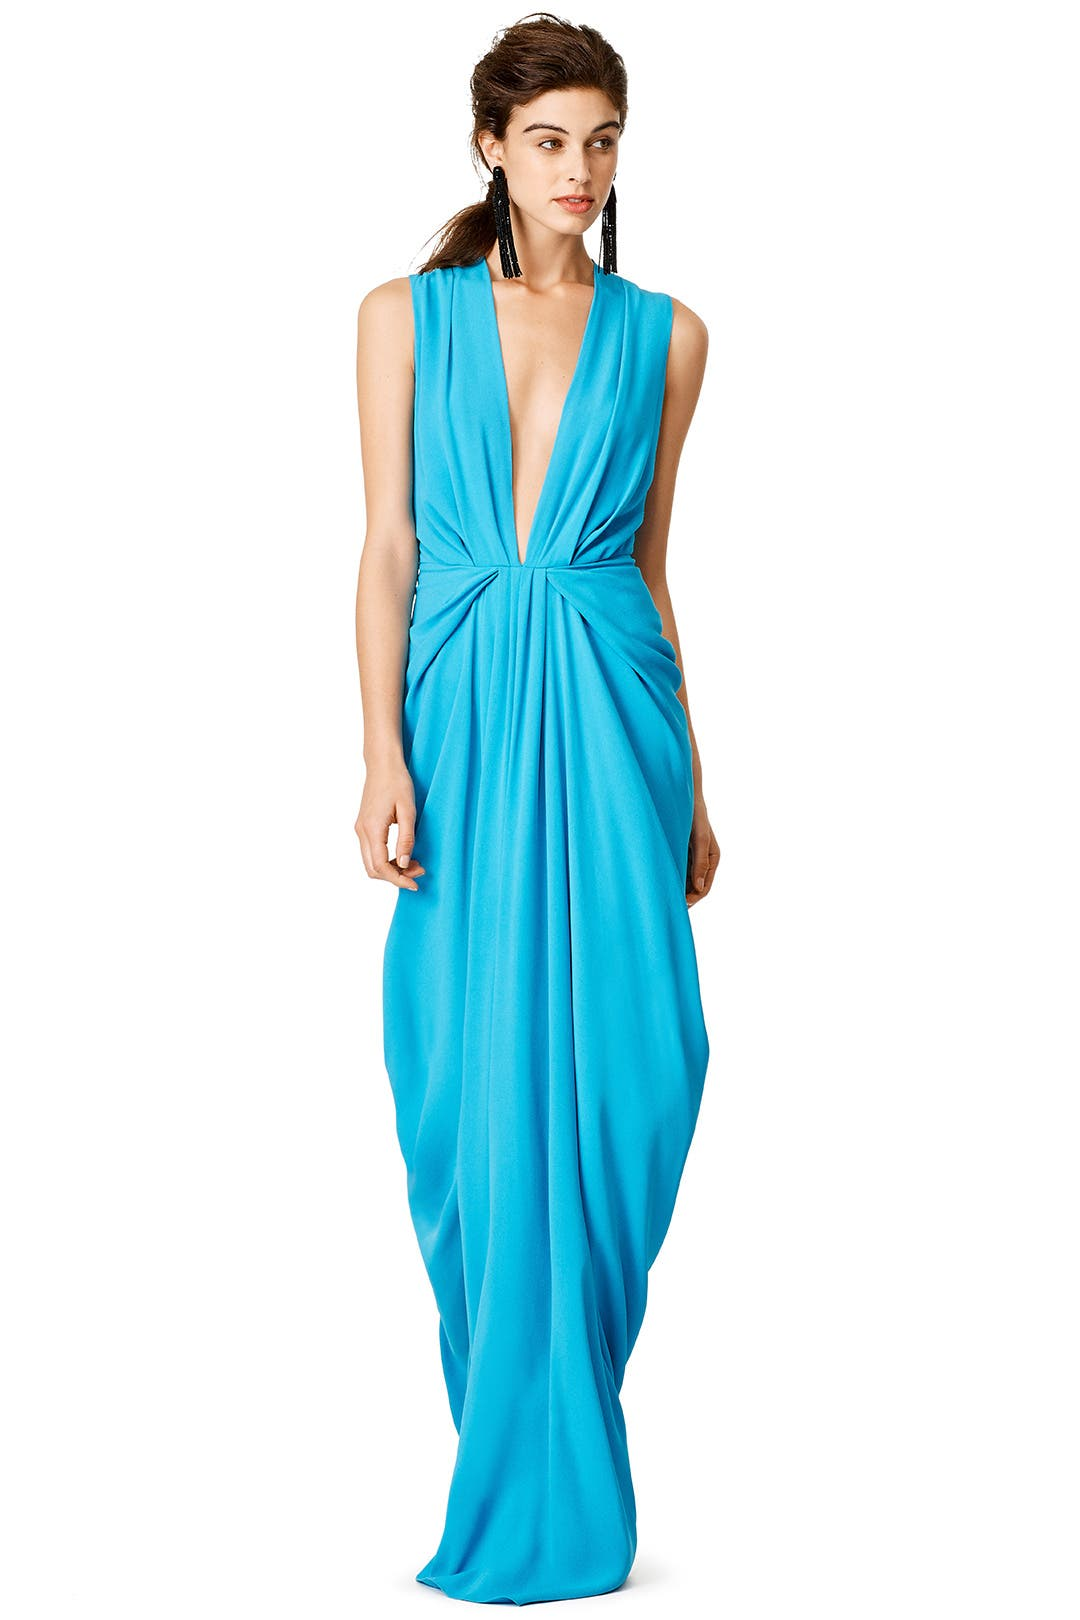 Aphrodite Gown by Thakoon for $358 | Rent the Runway